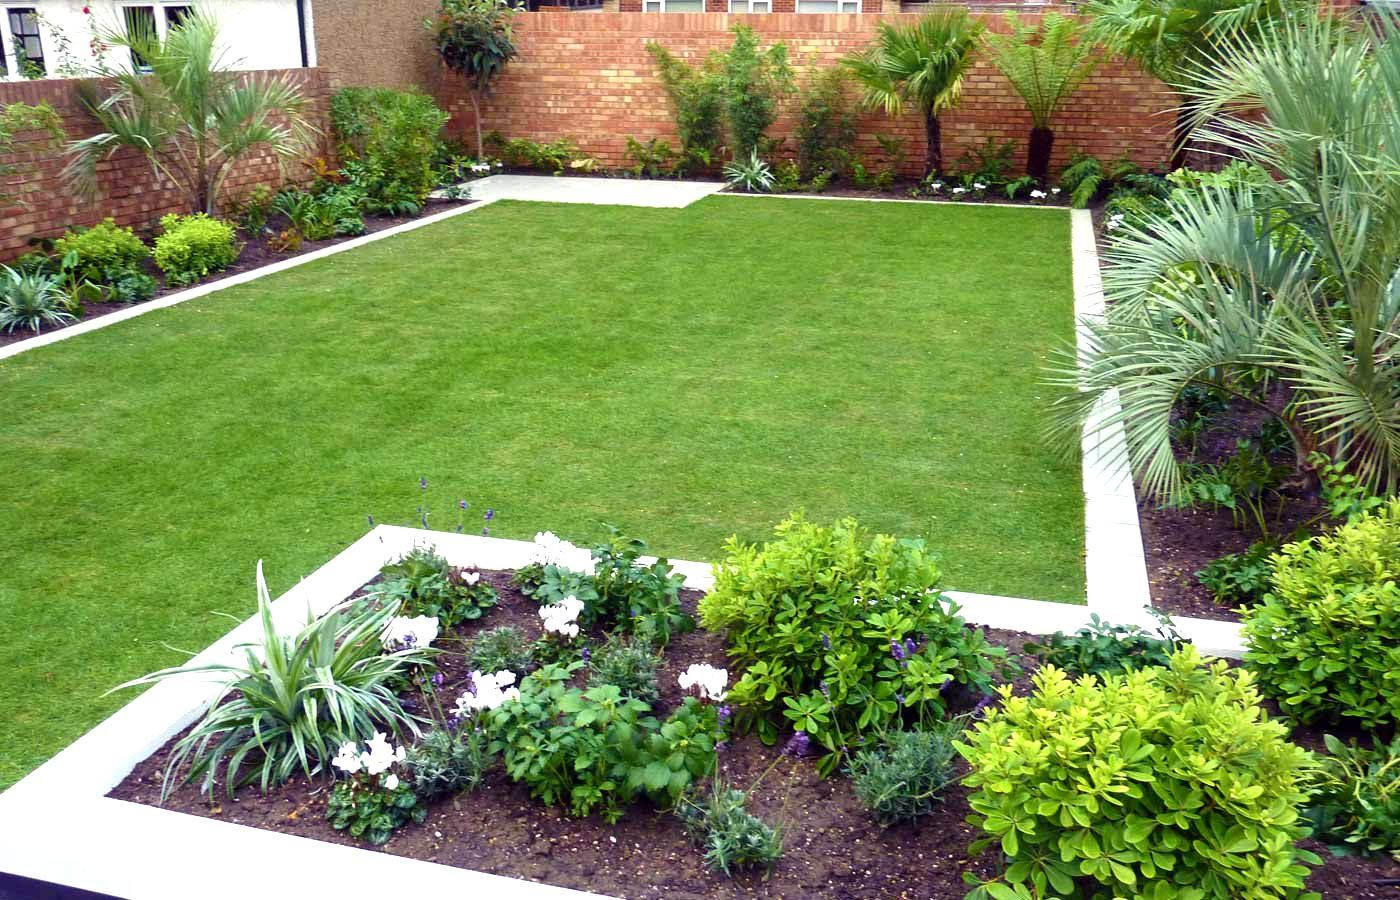 Simple Garden Design Of Simple Garden Designs No Fret Small Garden Design